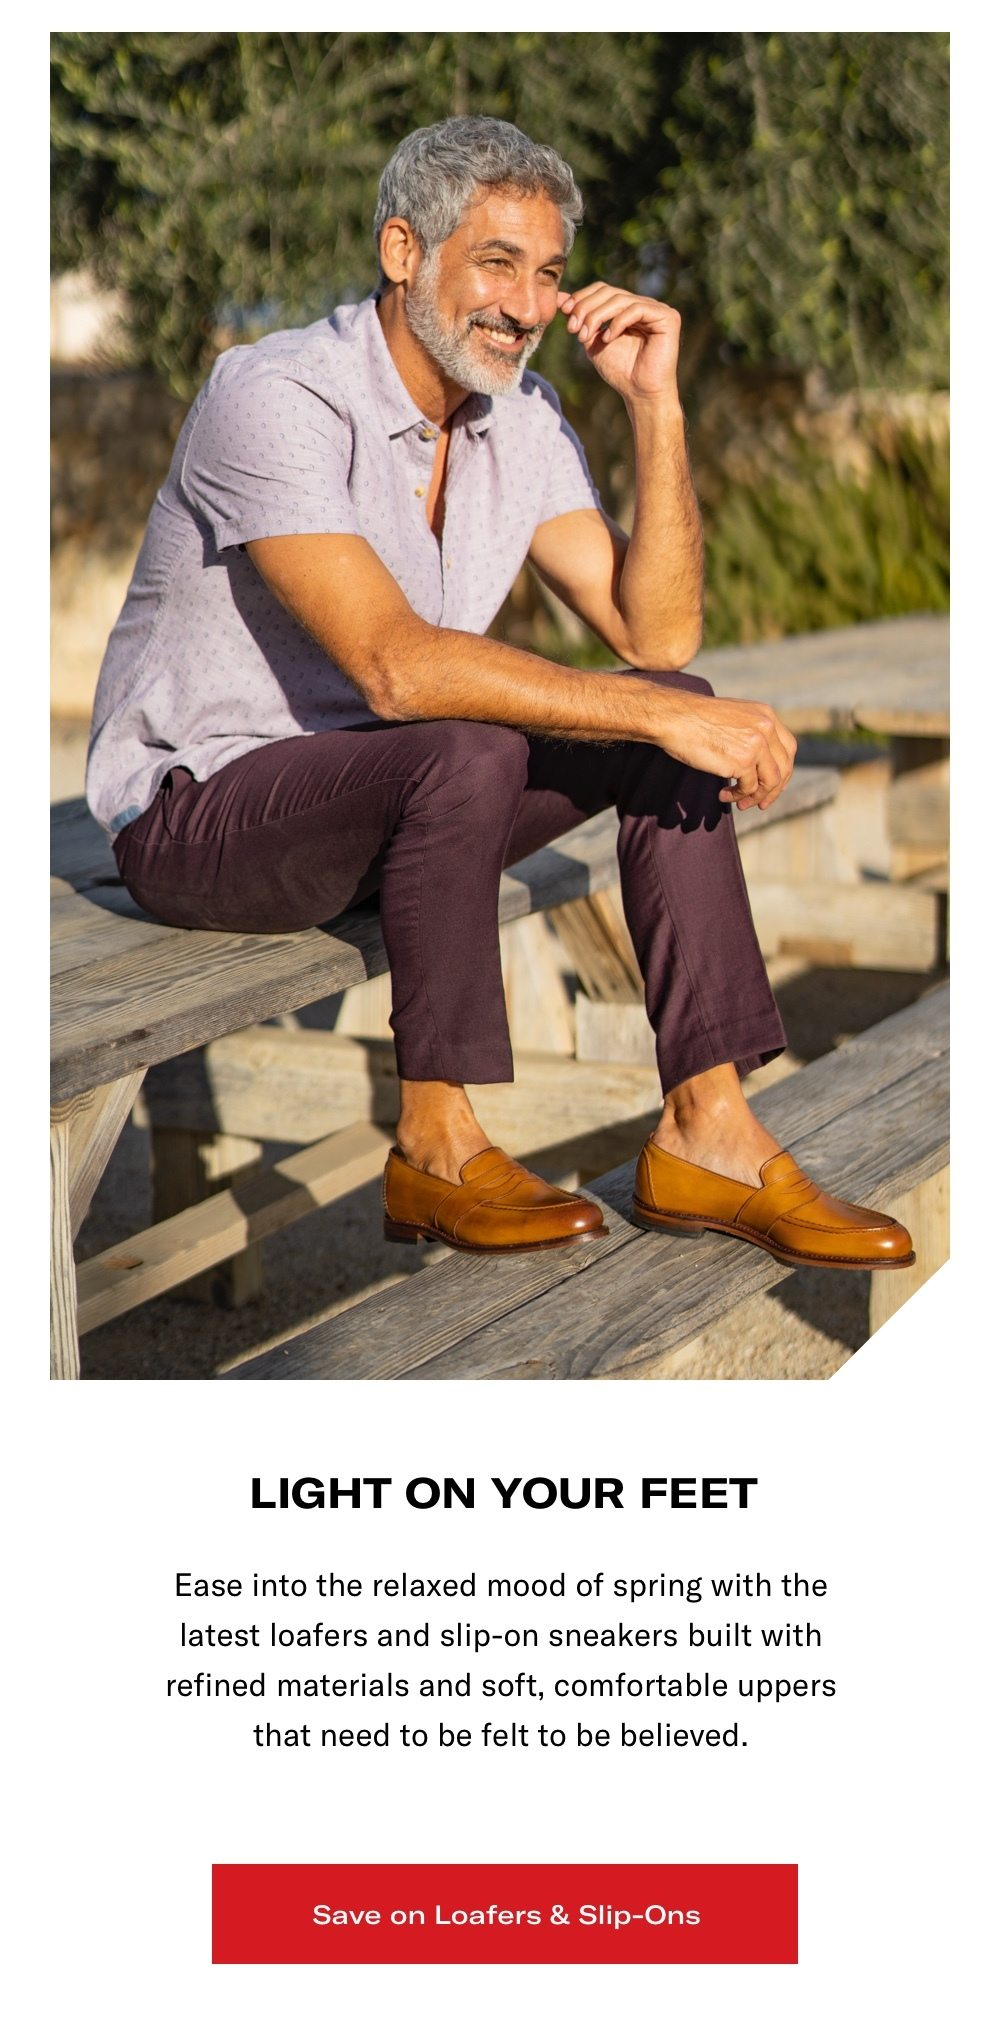 Save On Loafers & Slip-Ons